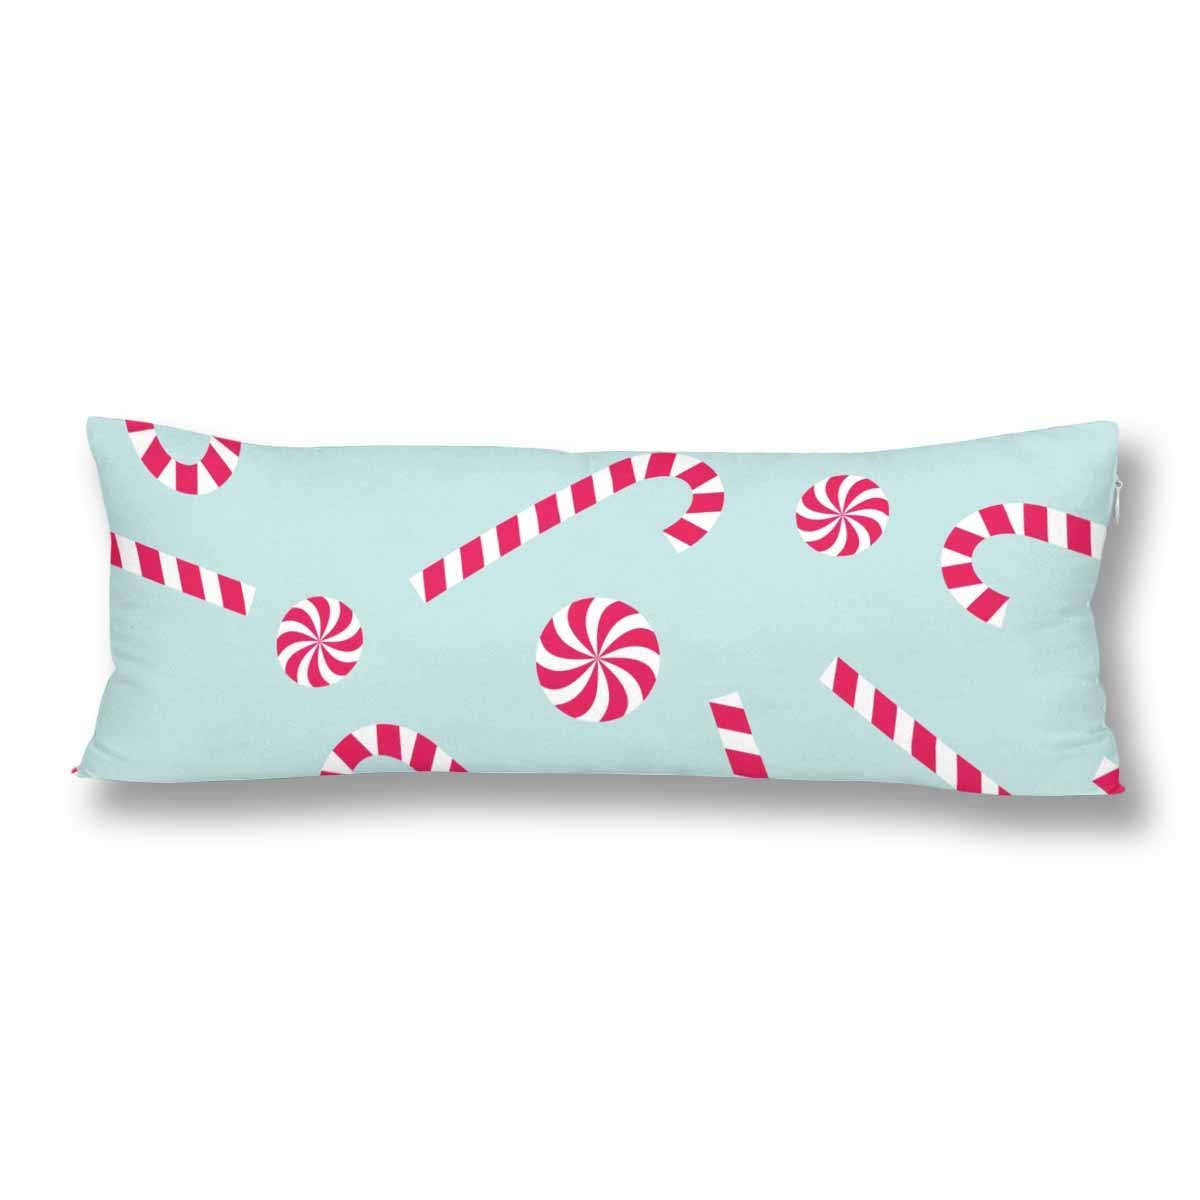 gckg candy cane lollipop new year merry christmas winter mint green body pillow covers case pillowcase 20x60 inches couch